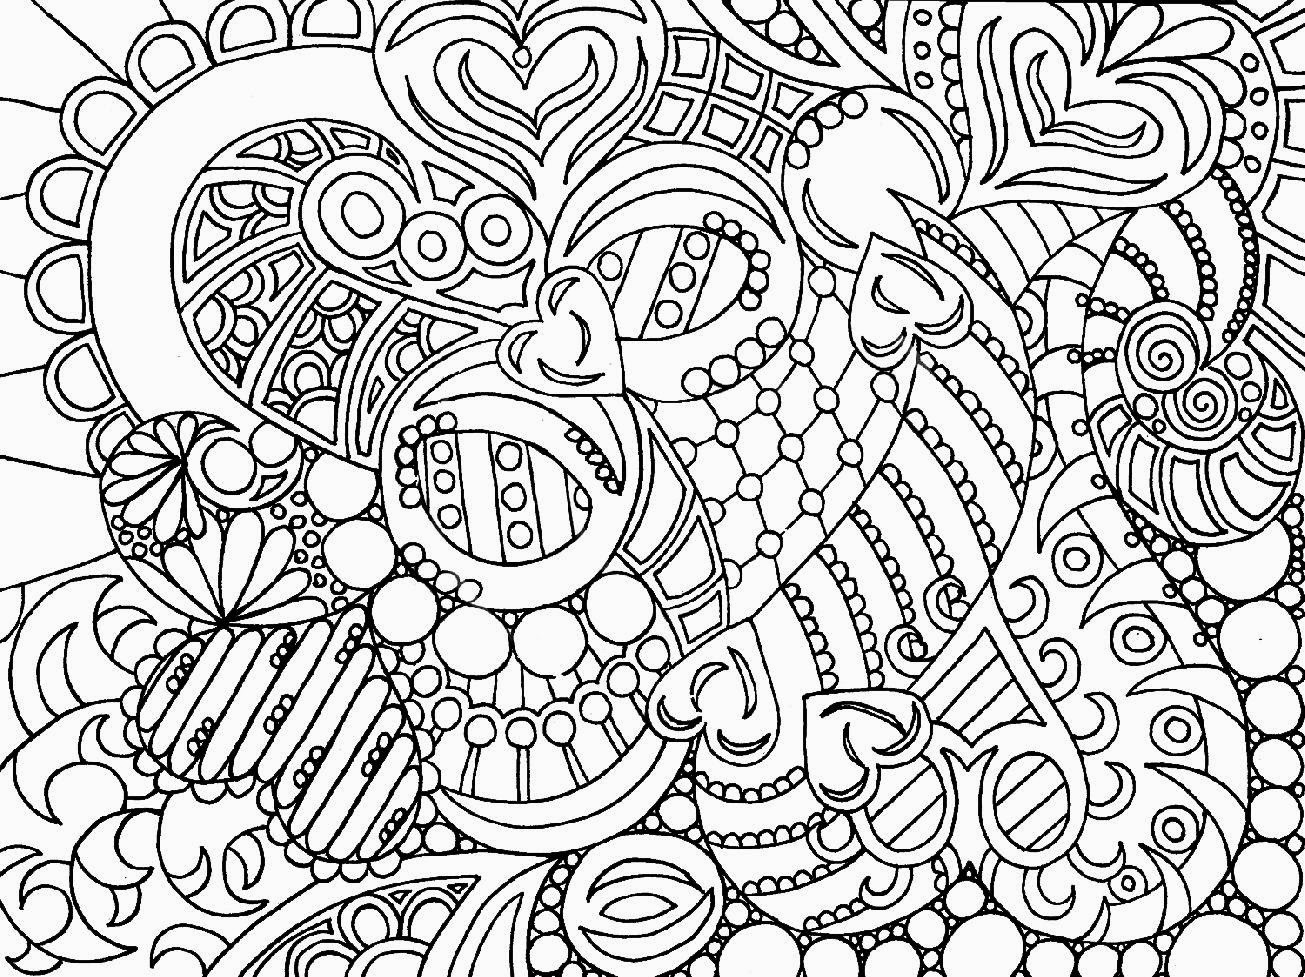 coloring pages online for adults hard coloring pages for adults best coloring pages for kids adults pages online coloring for